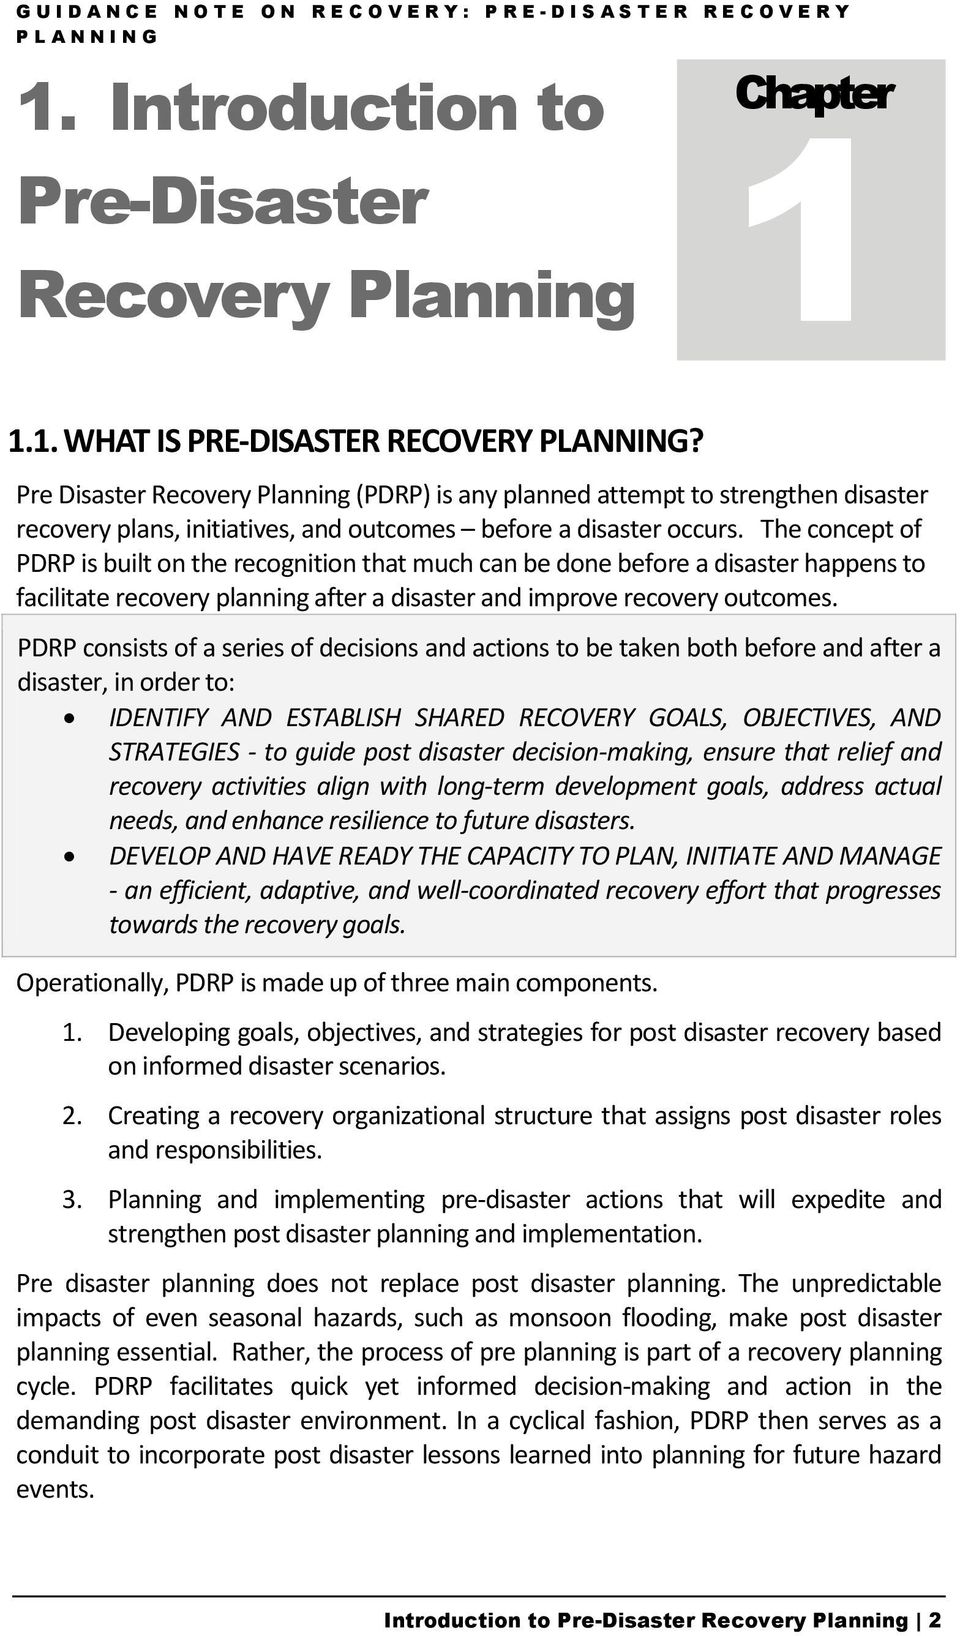 The concept of PDRP is built on the recognition that much can be done before a disaster happens to facilitate recovery planning after a disaster and improve recovery outcomes.